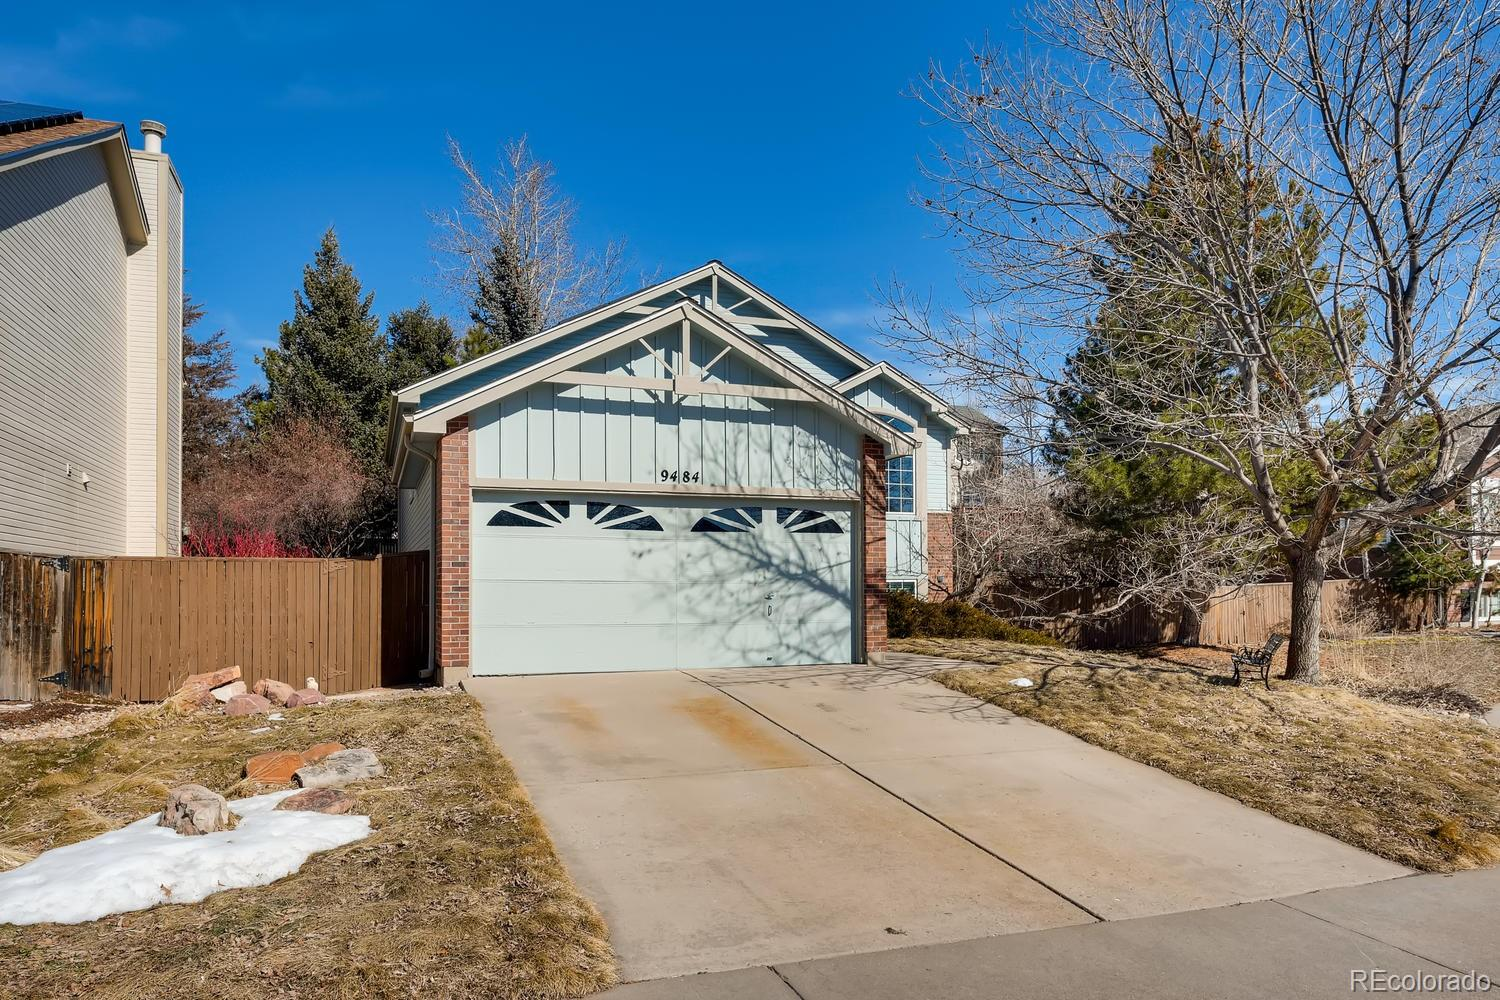 MLS# 1997025 - 2 - 9484 Palisade Court, Highlands Ranch, CO 80130